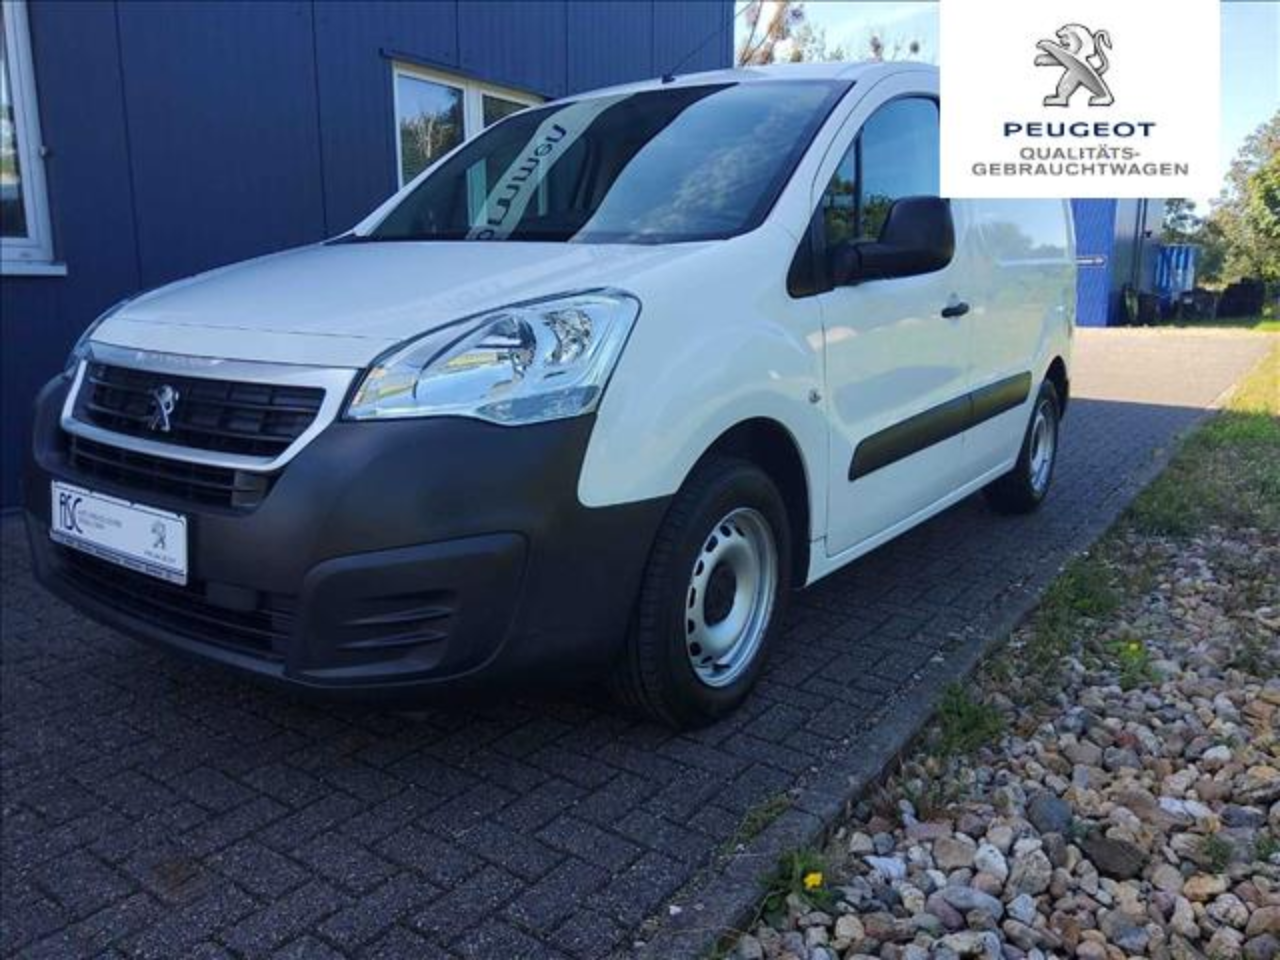 Peugeot Partner 1.6 Blue HDI 100 L1 Komfort Plus